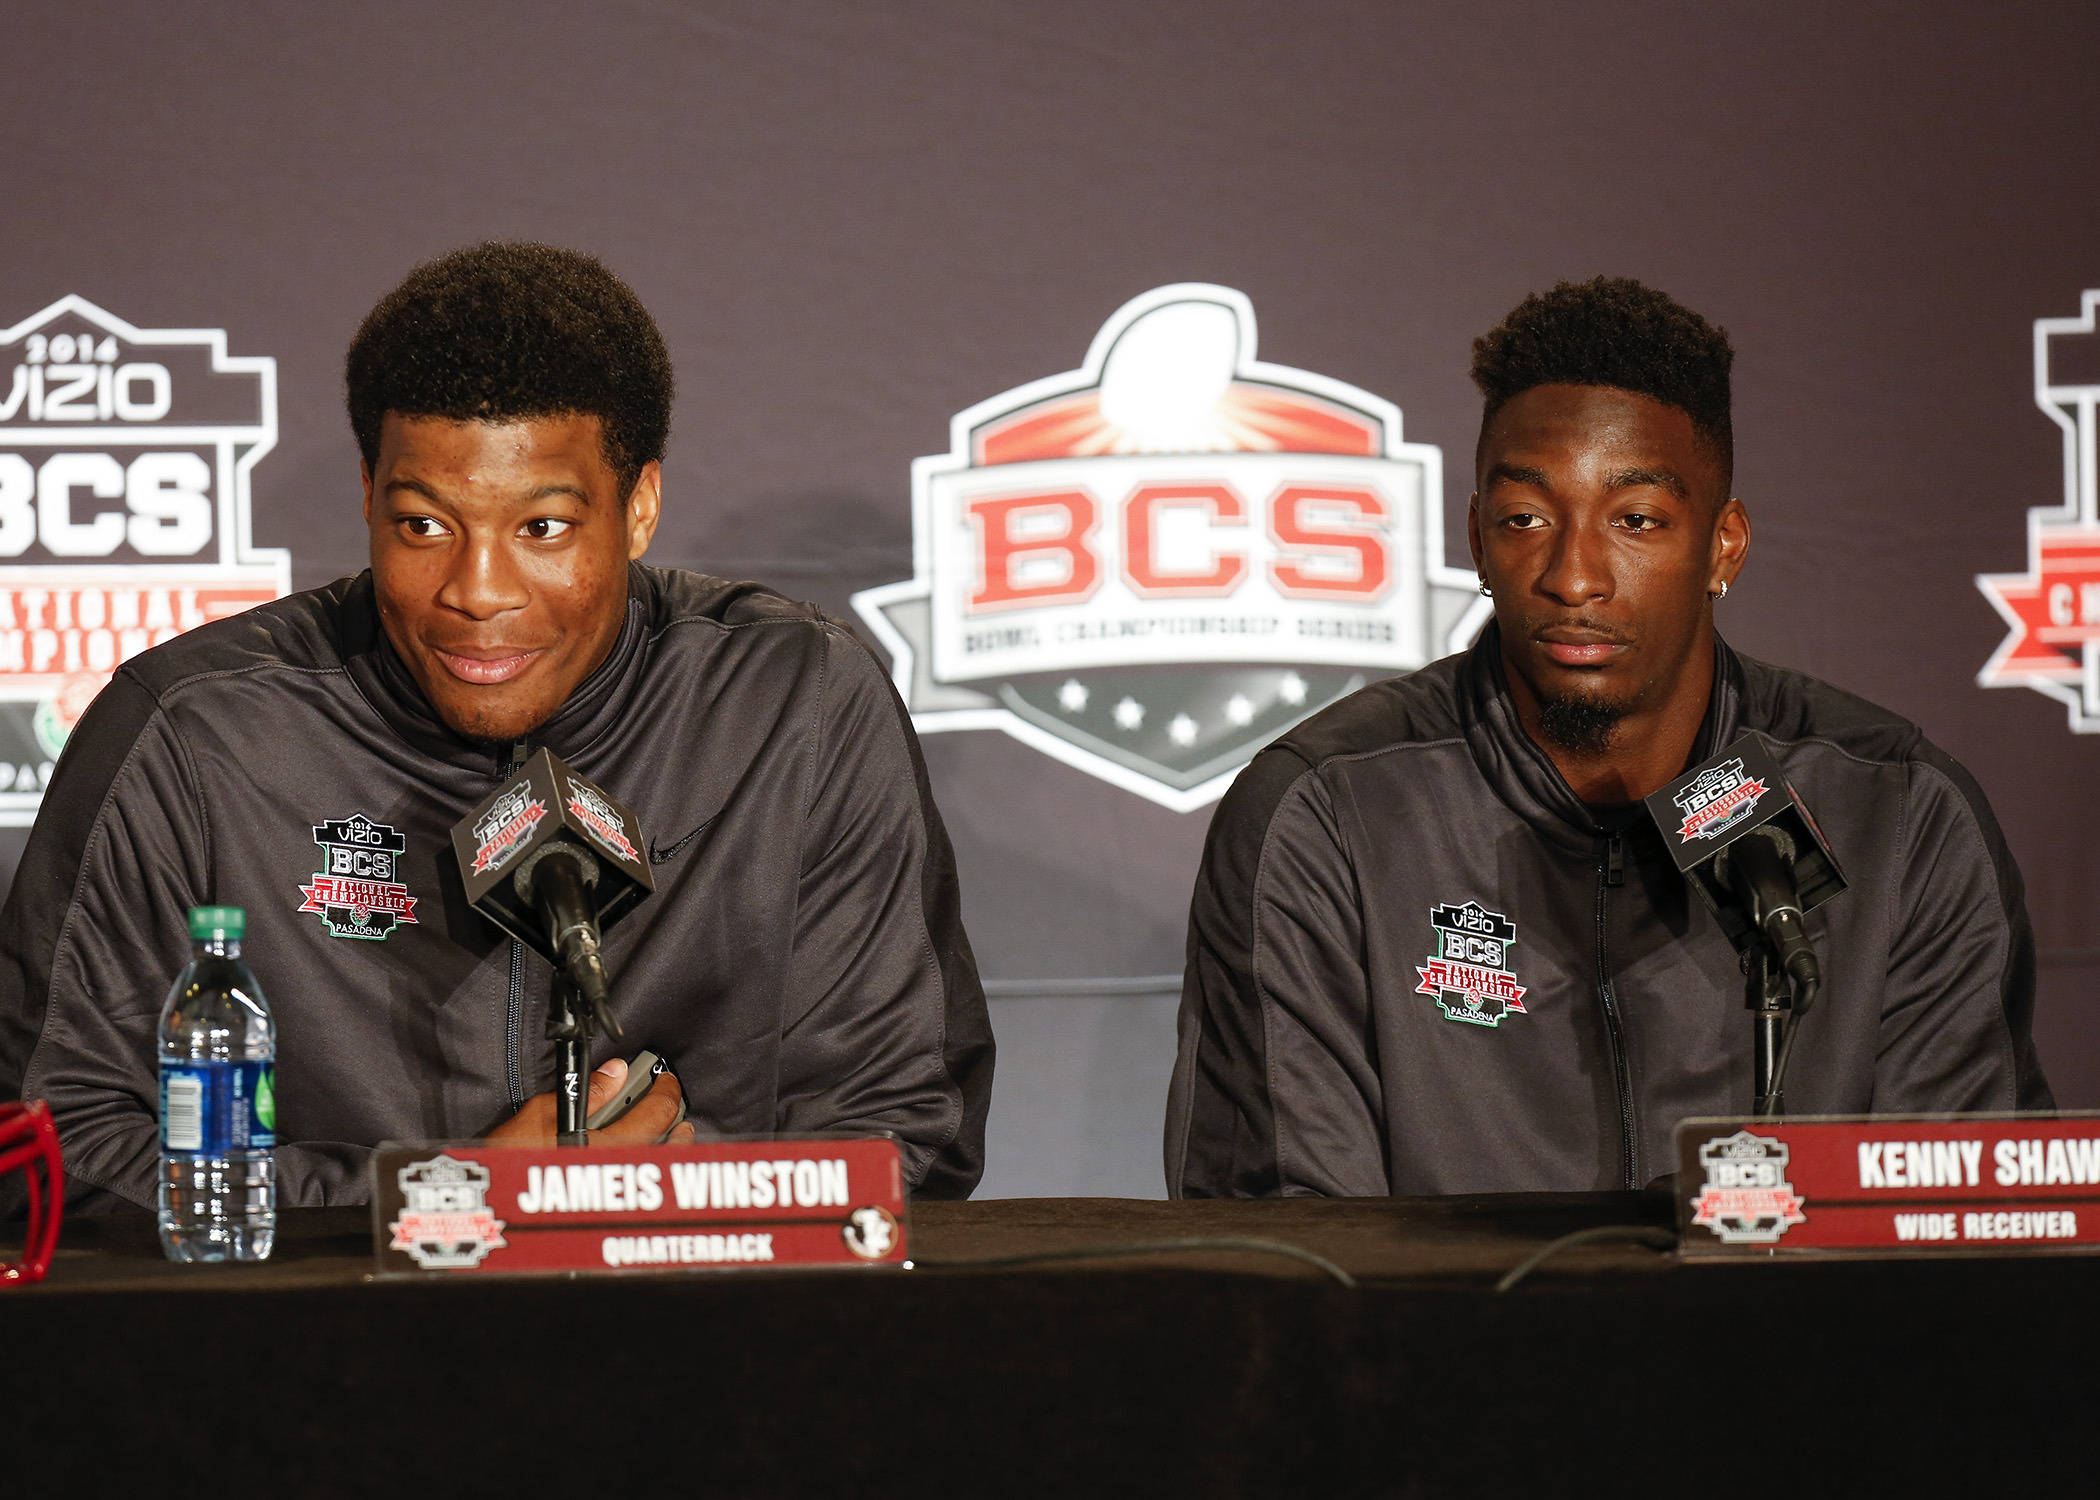 Jameis Winston and Kenny Shaw